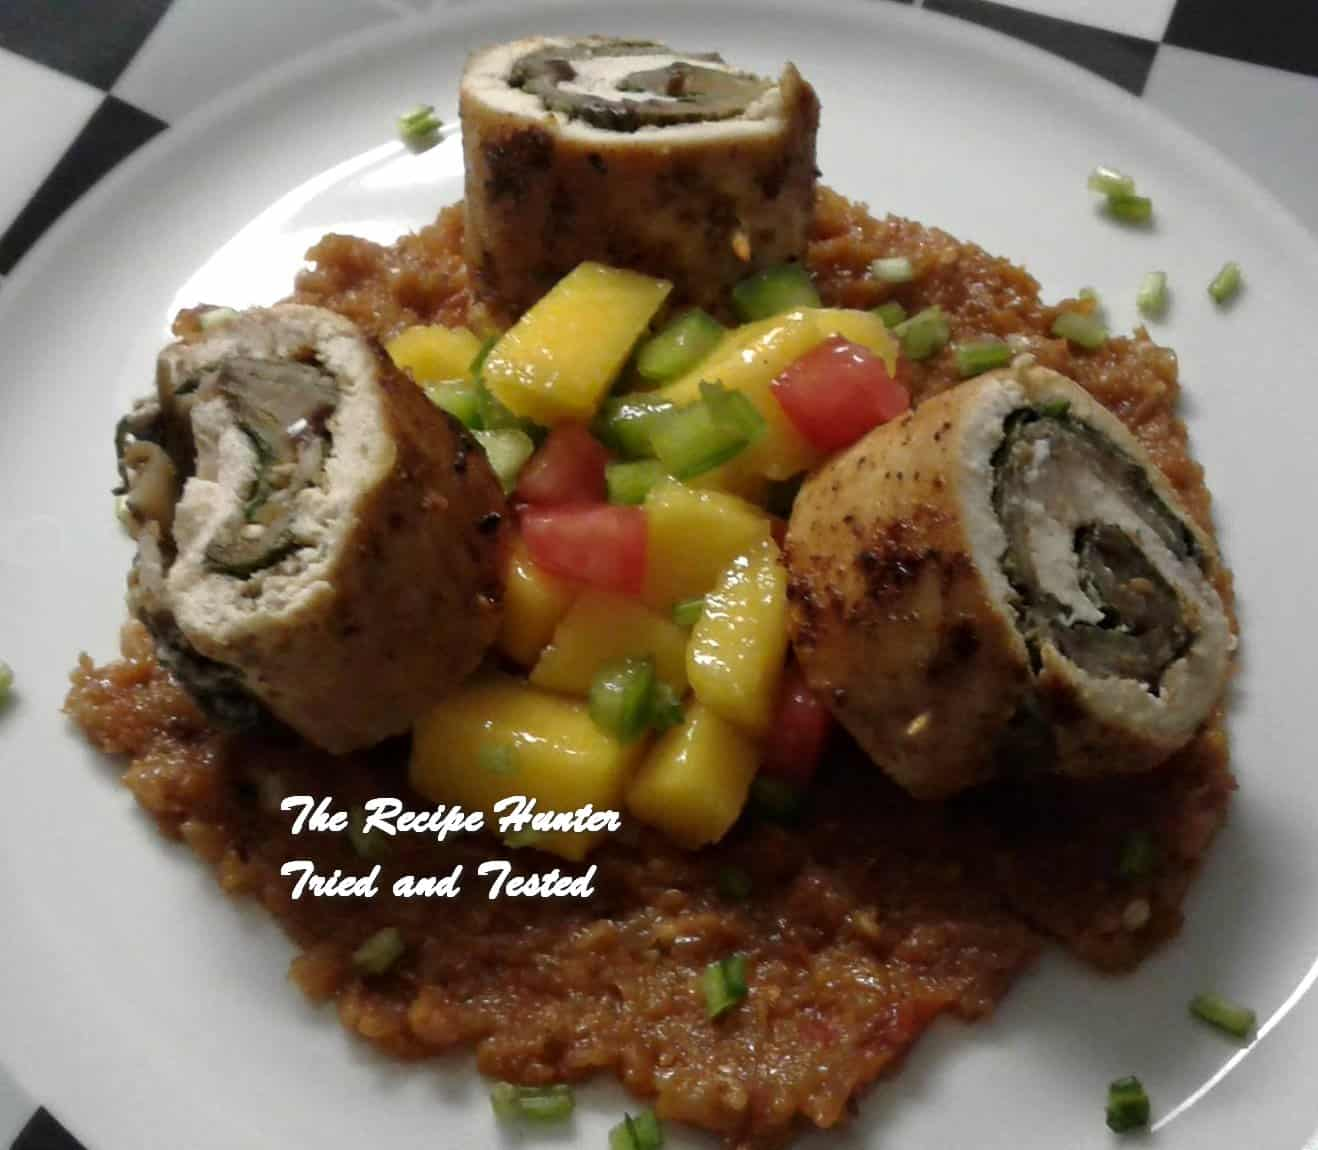 Nazley's Chicken Roll Ups served with Mango salsa and Aubergine puree